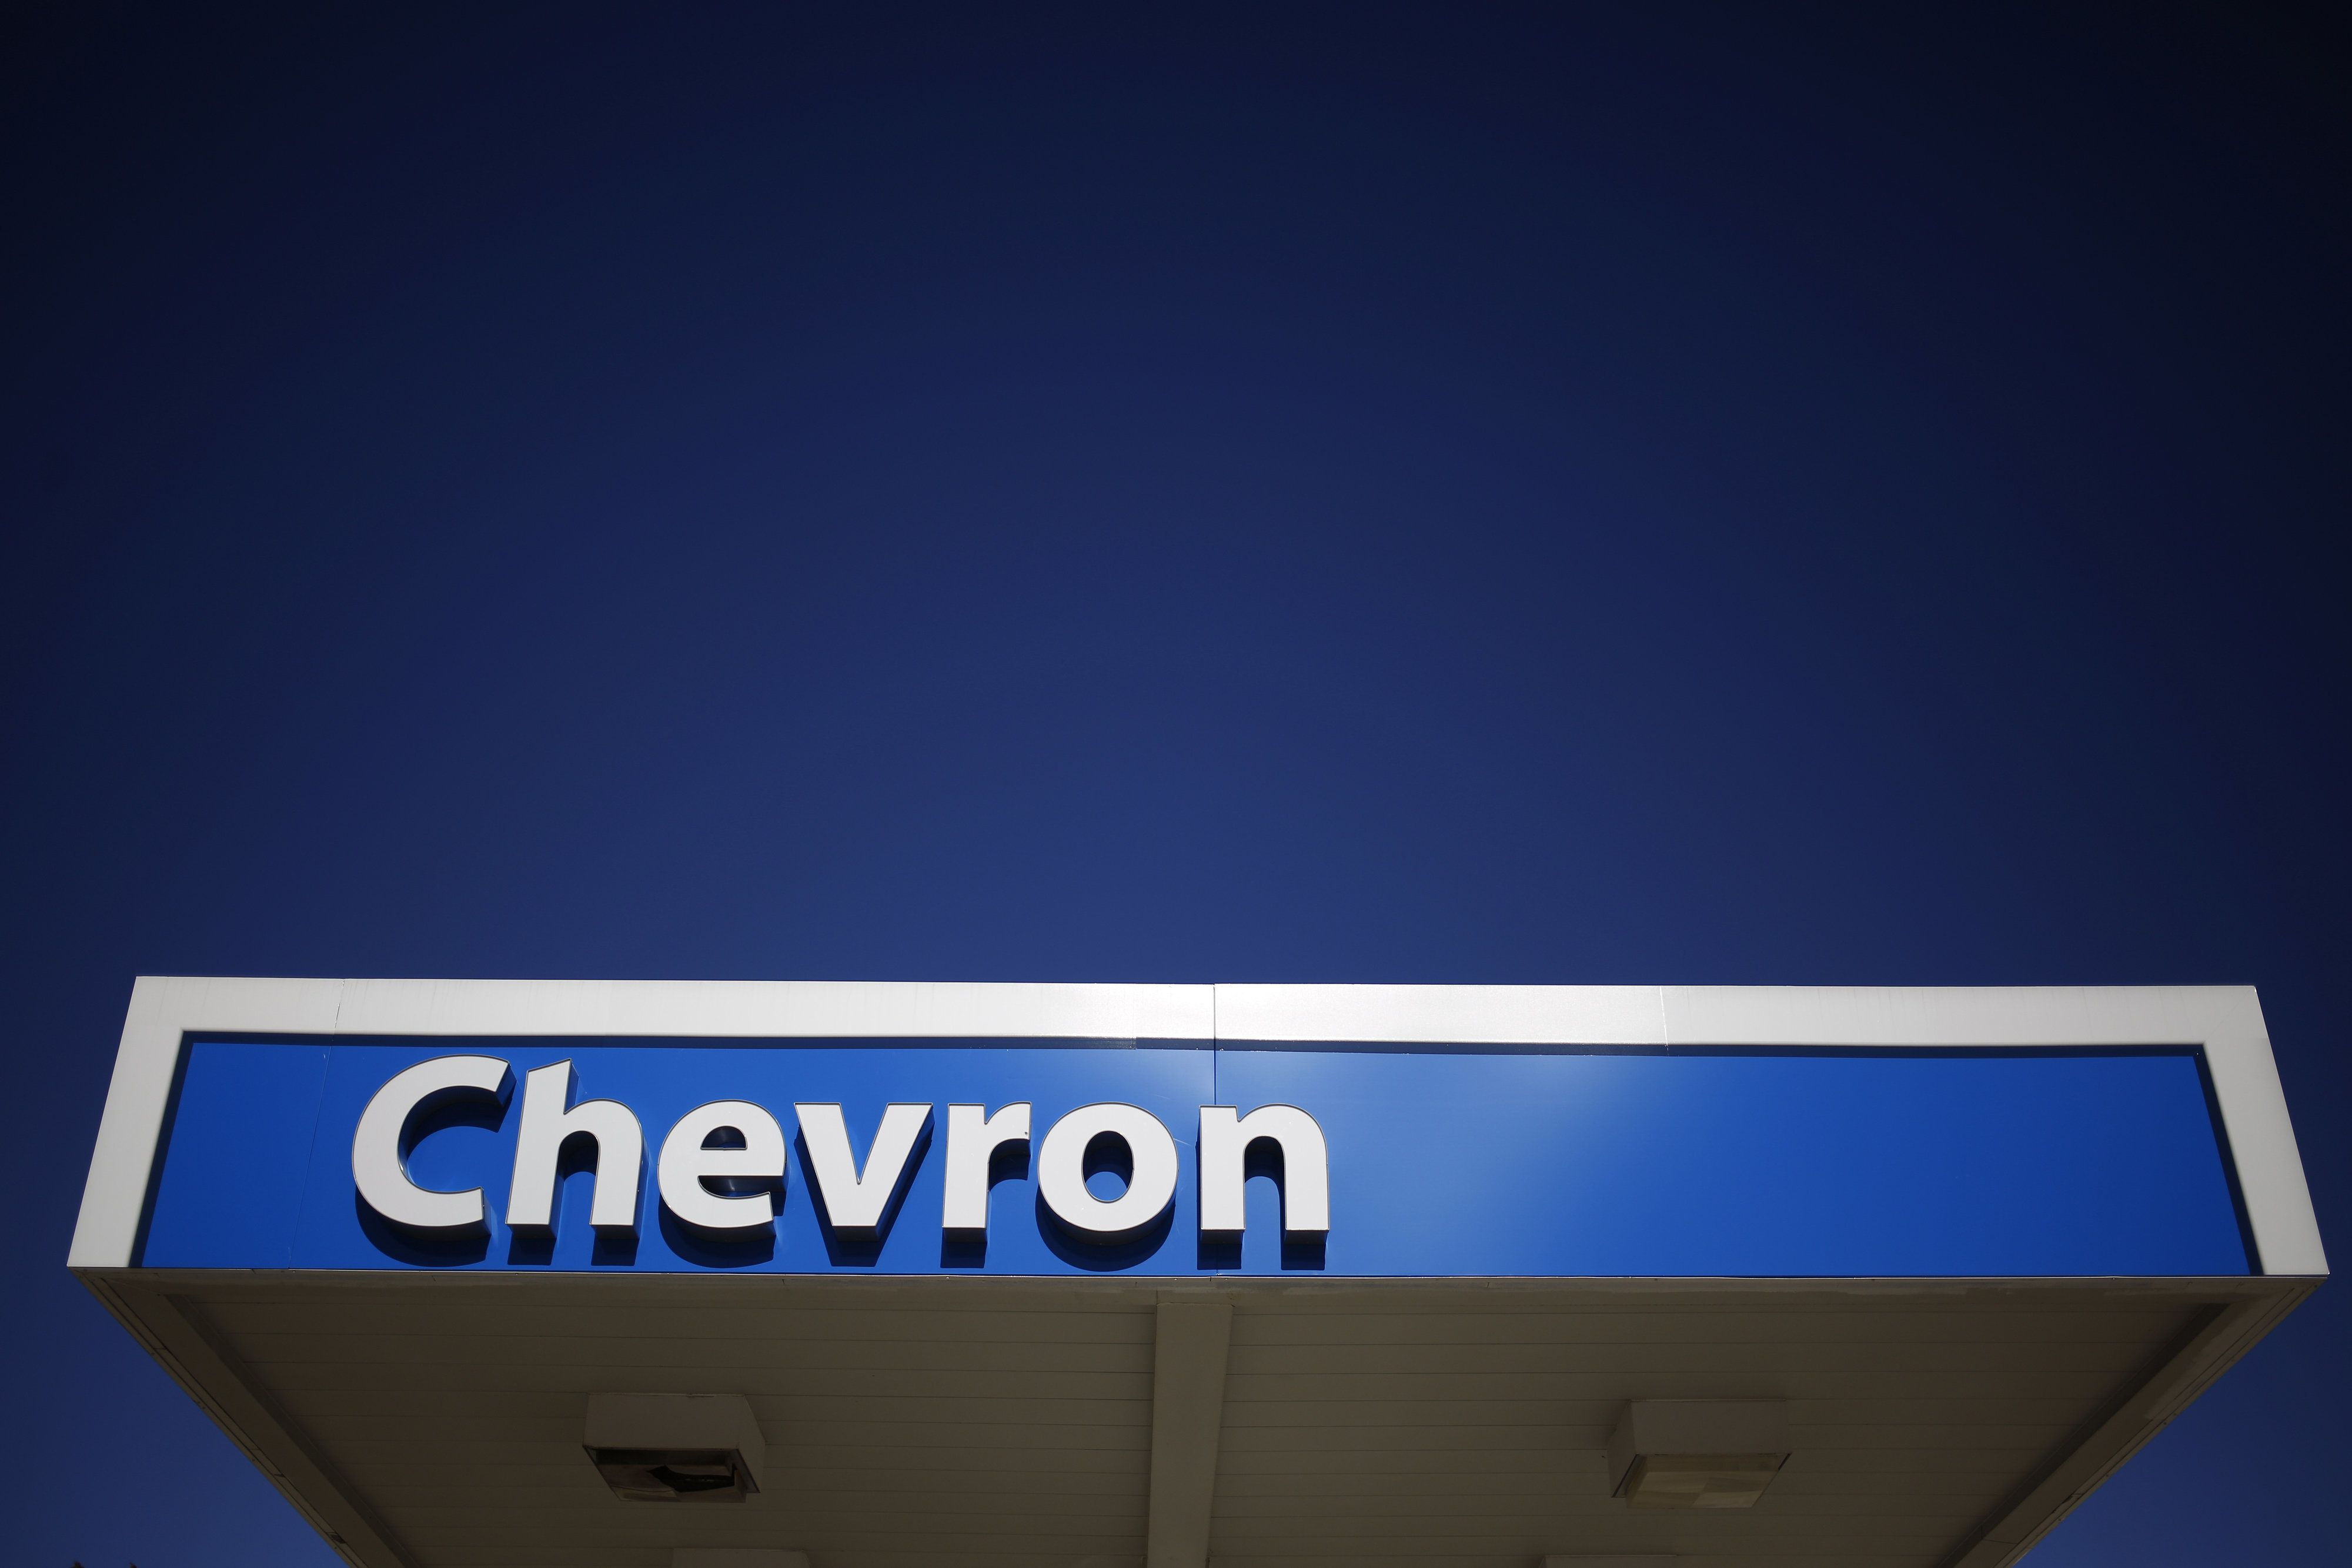 Signage is displayed at a Chevron Corp. gas station in Guild, Tennessee, U.S., on Tuesday, Jan. 24, 2017. Chevron Corp. is expected to release earnings figures on January 27. Photographer: Luke Sharrett/Bloomberg via Getty Images